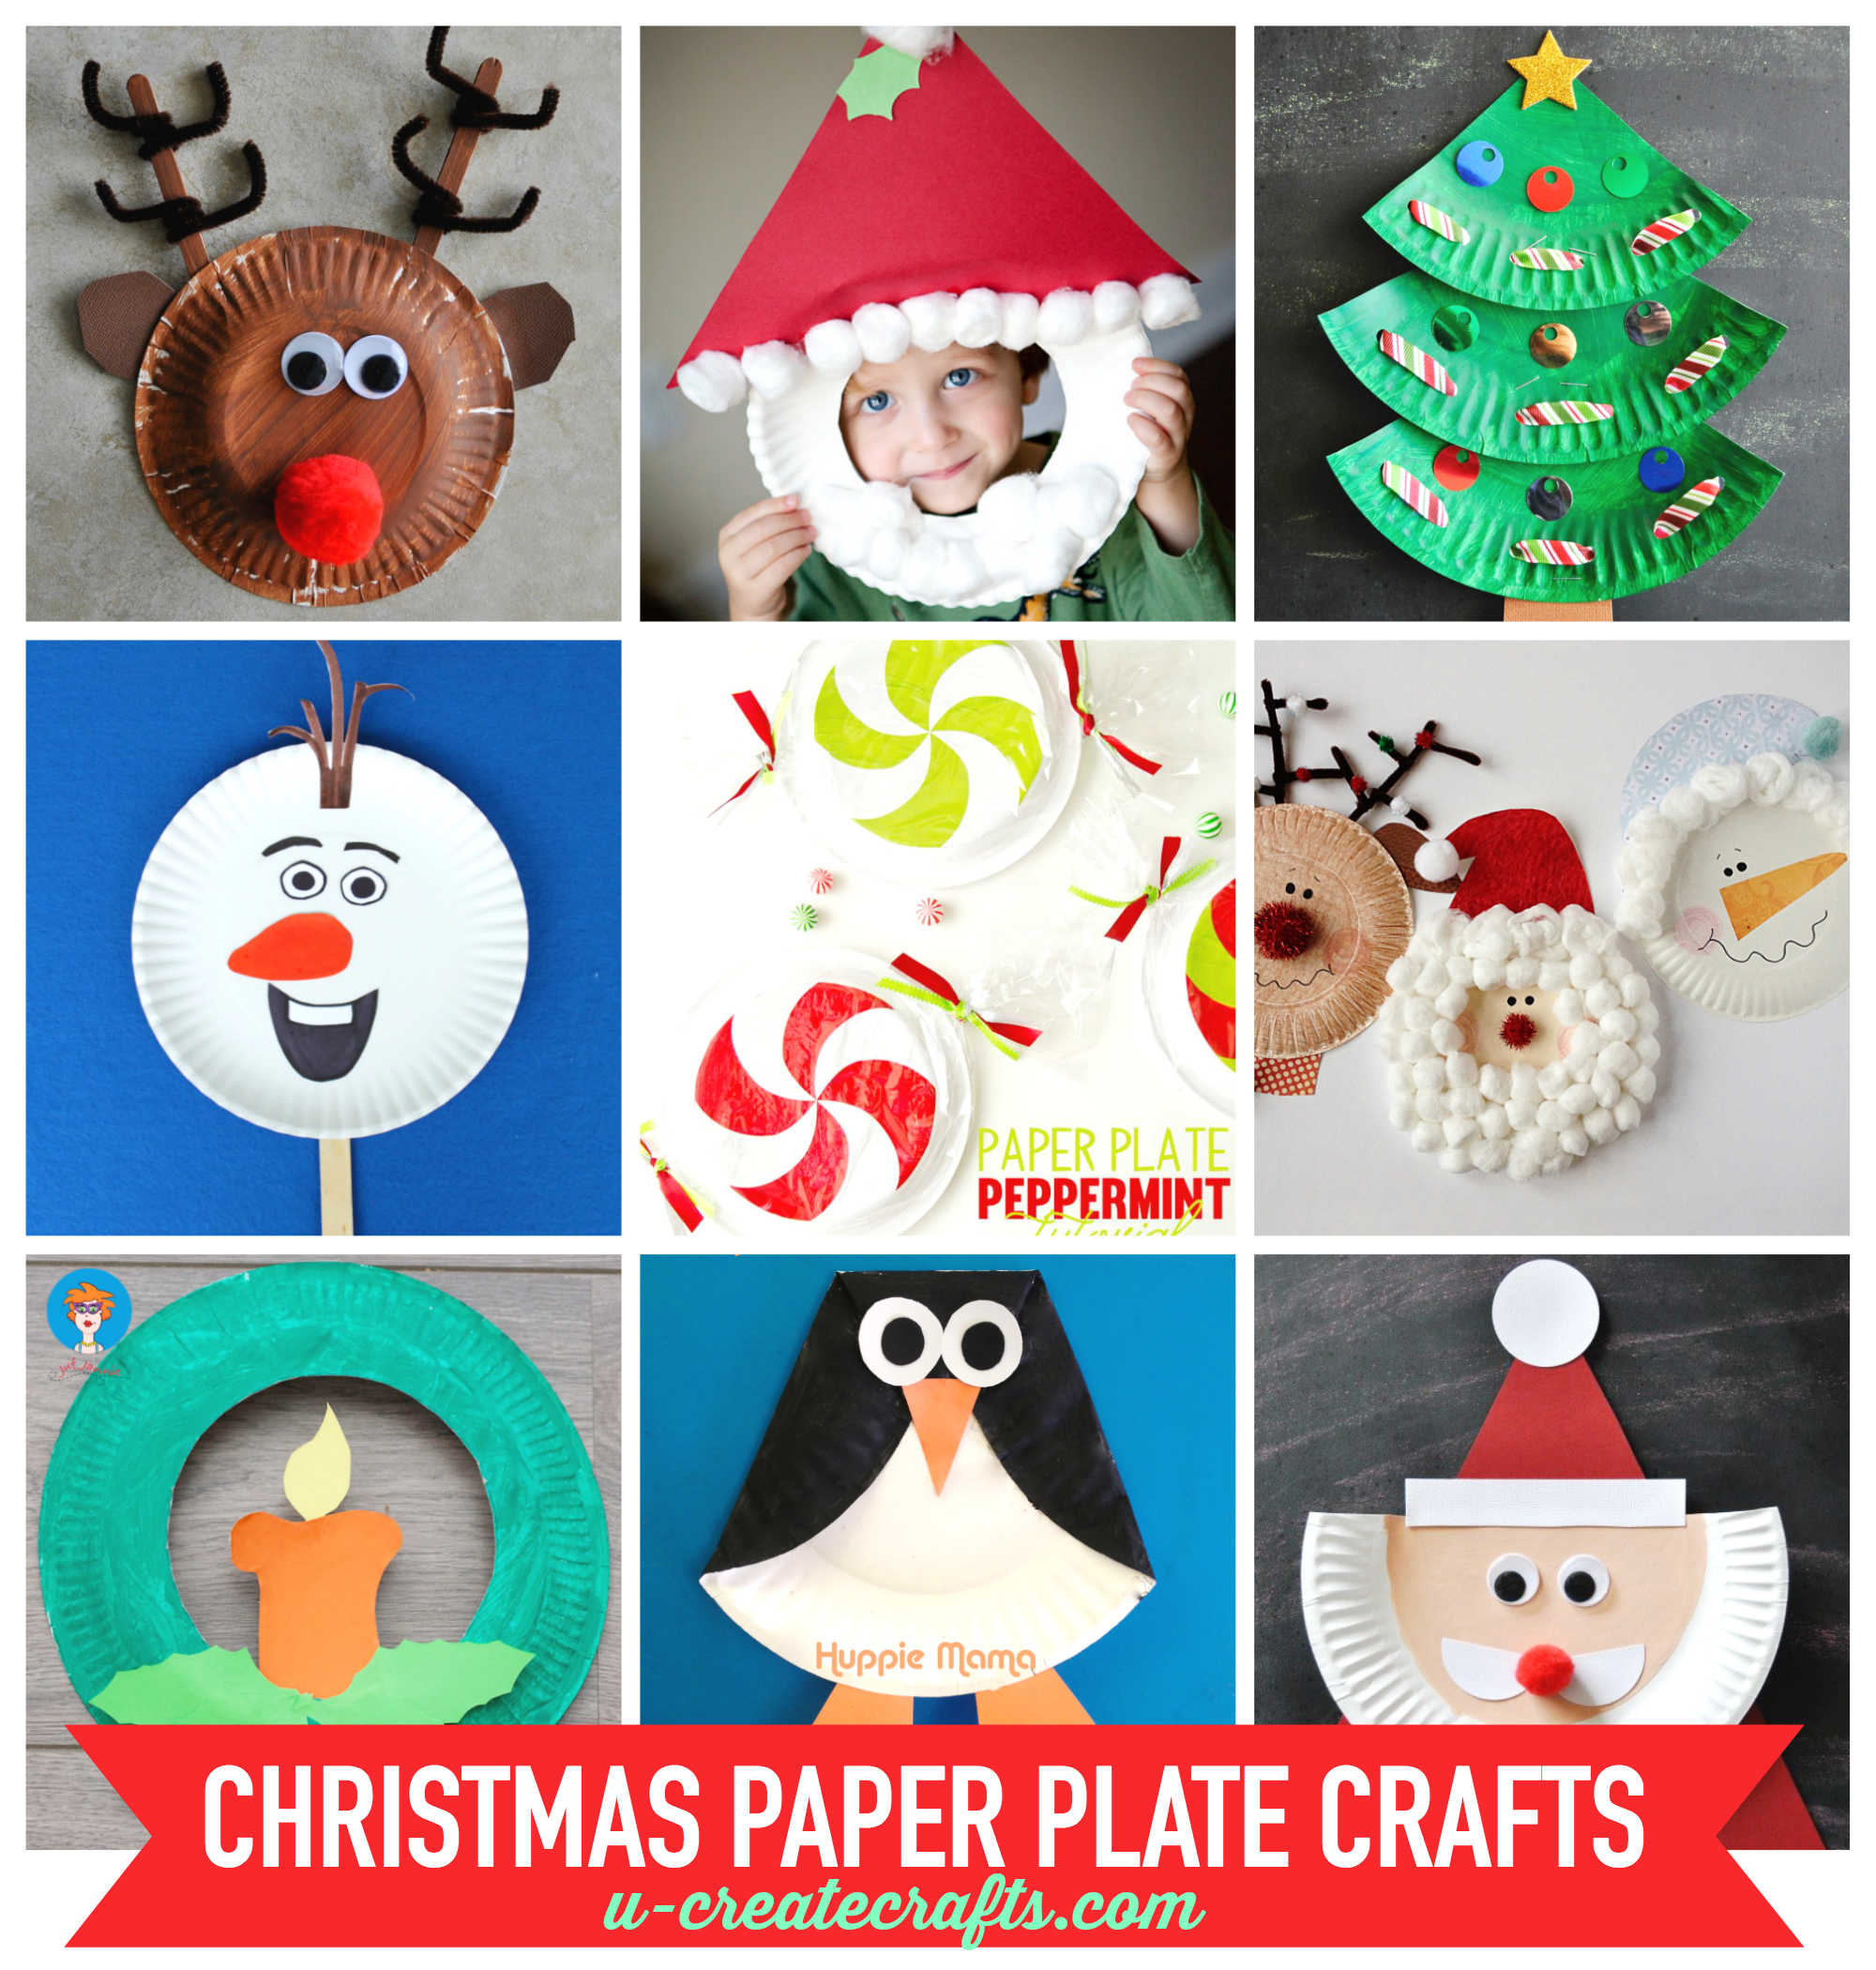 Paper Craft Ideas For Christmas Part - 25: Christmas Paper Plate Crafts At U Create